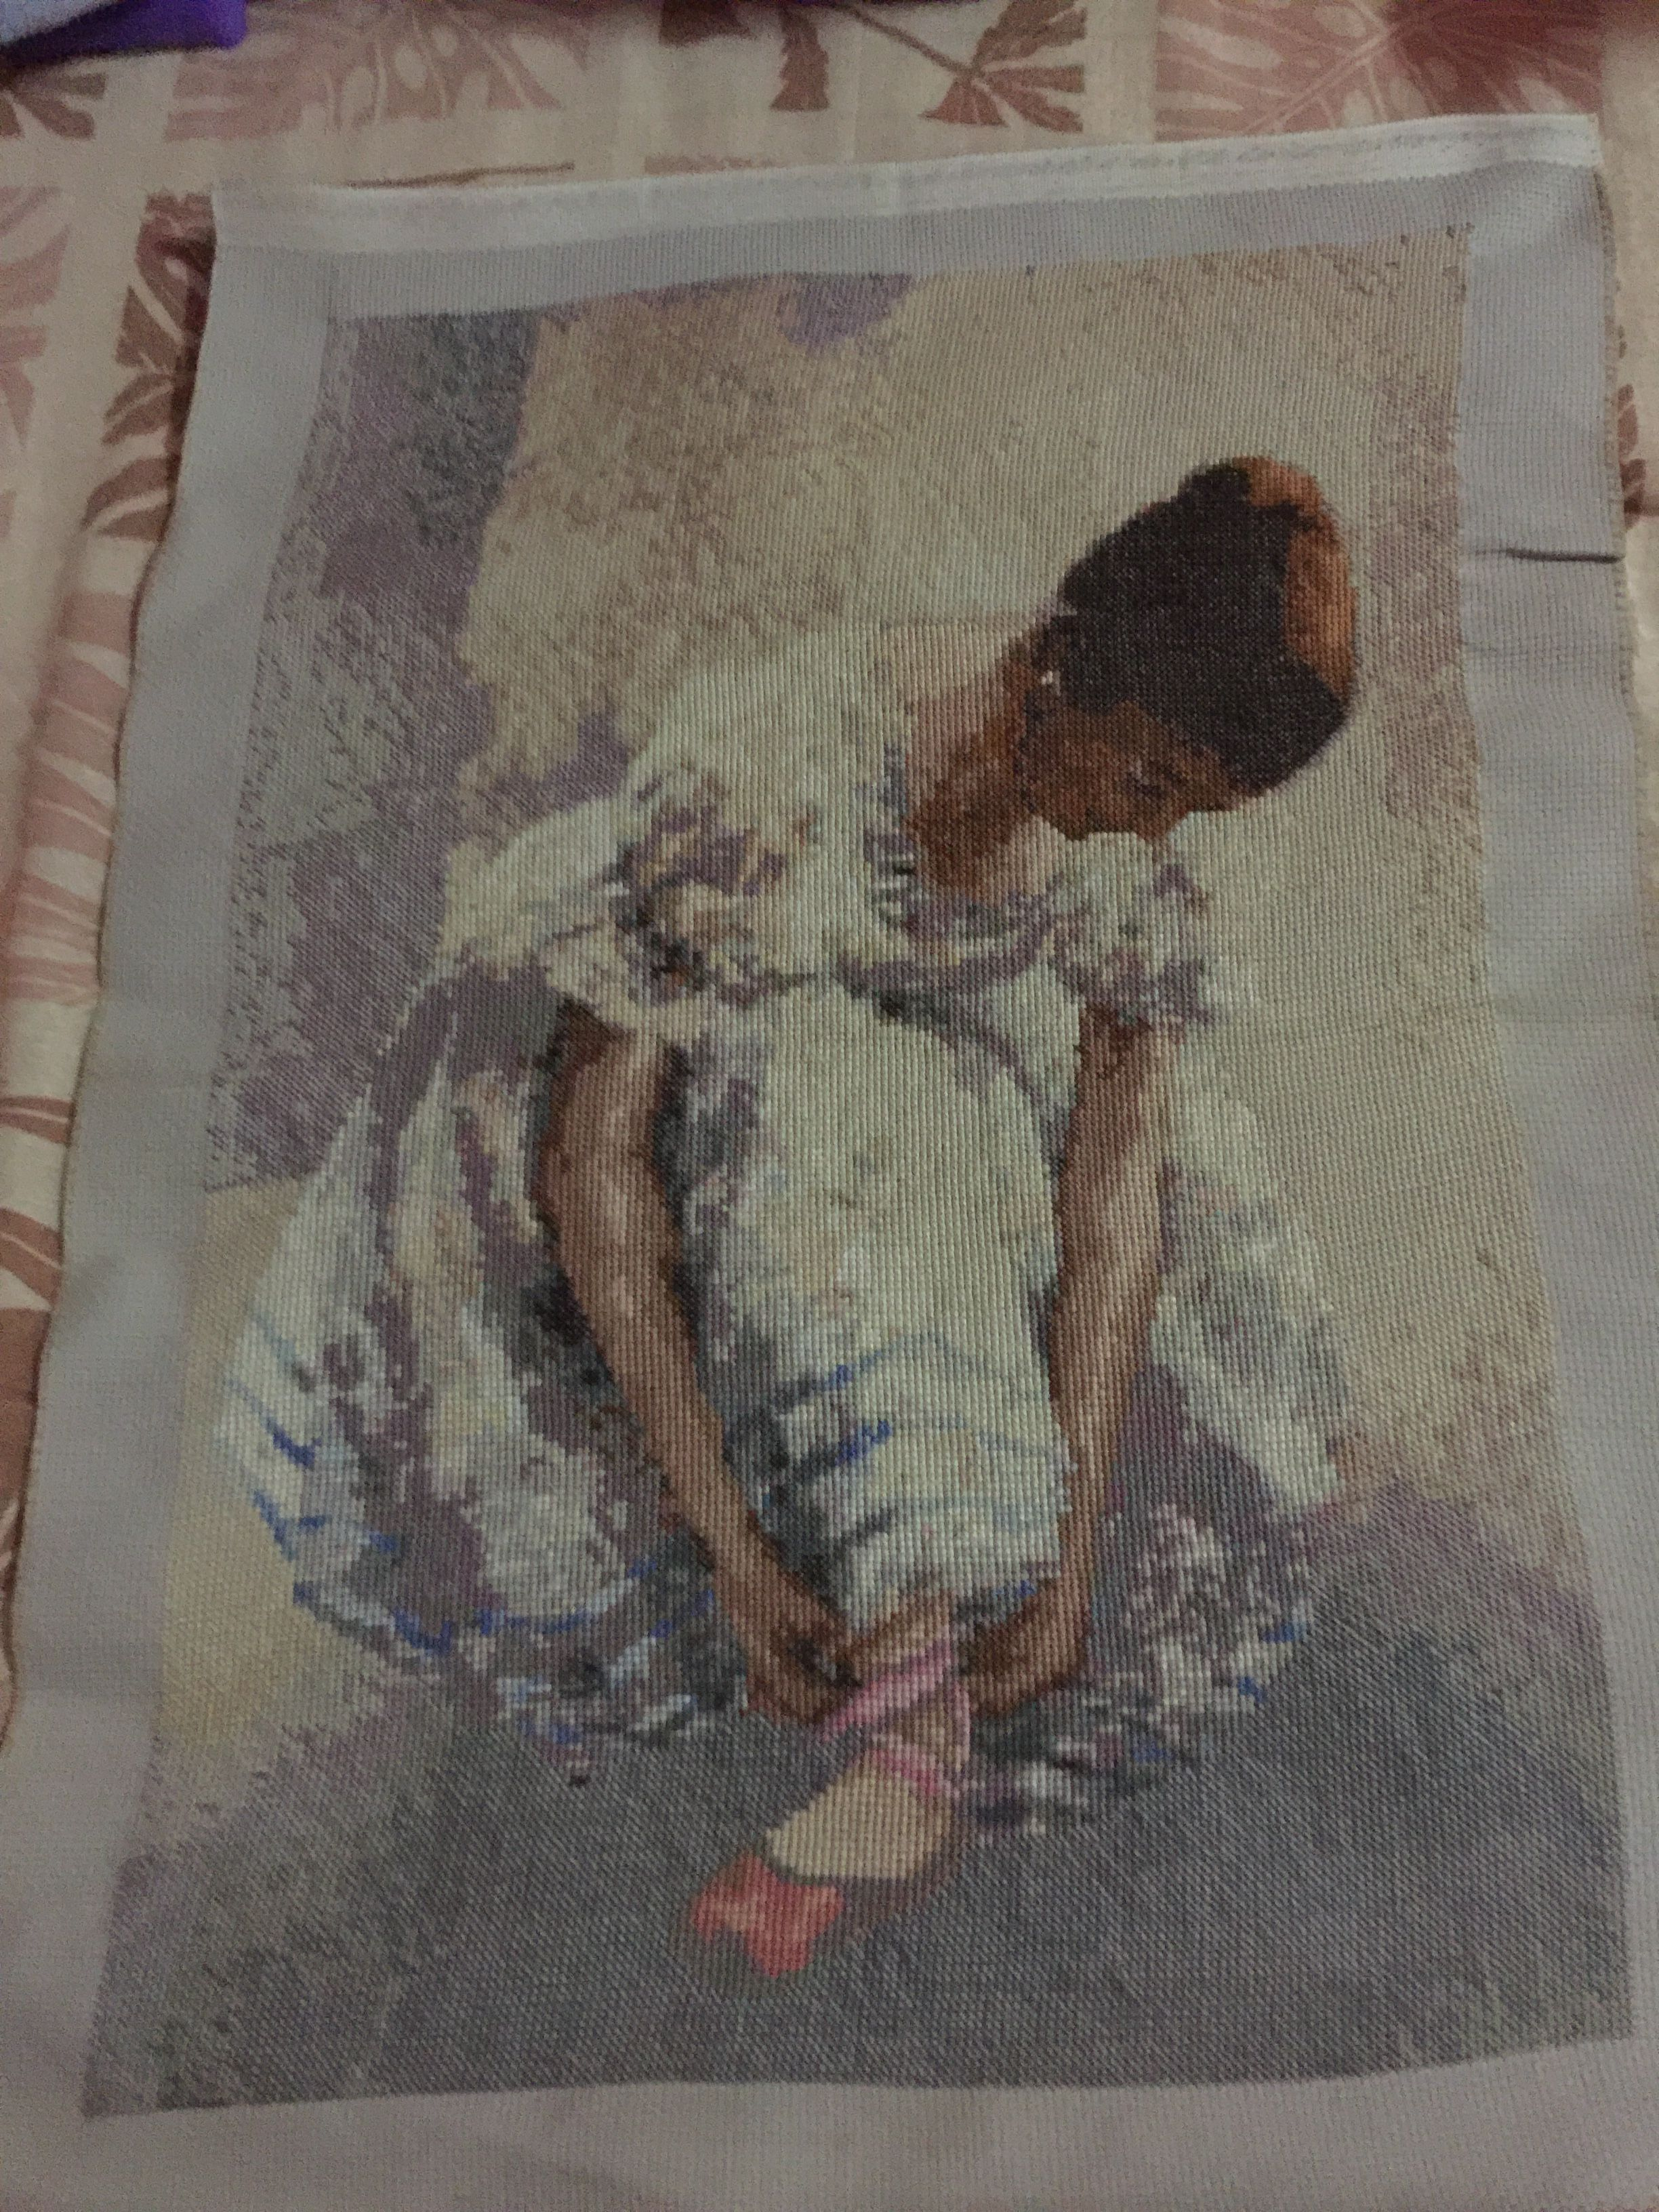 Ballet dancer finished cross stitch work. I forgot the name for this piece...anyway I love this work